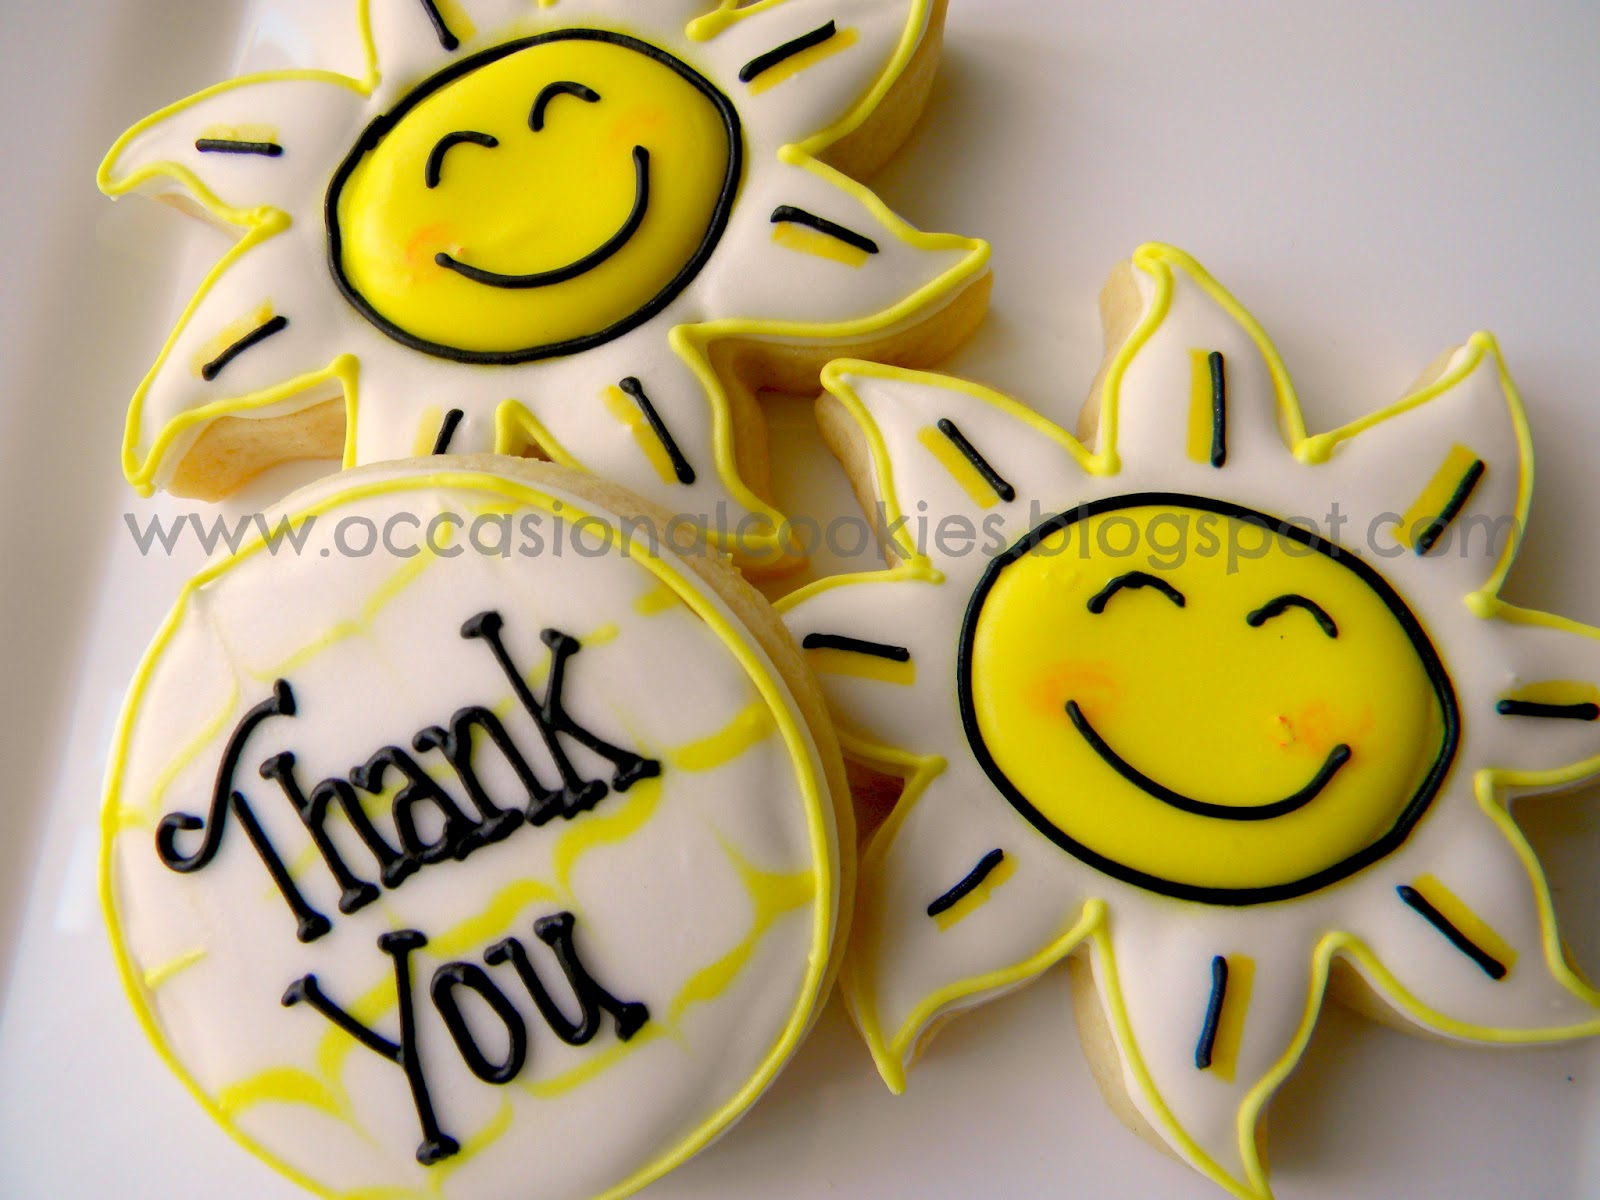 Occasional cookies happy thank you cookies